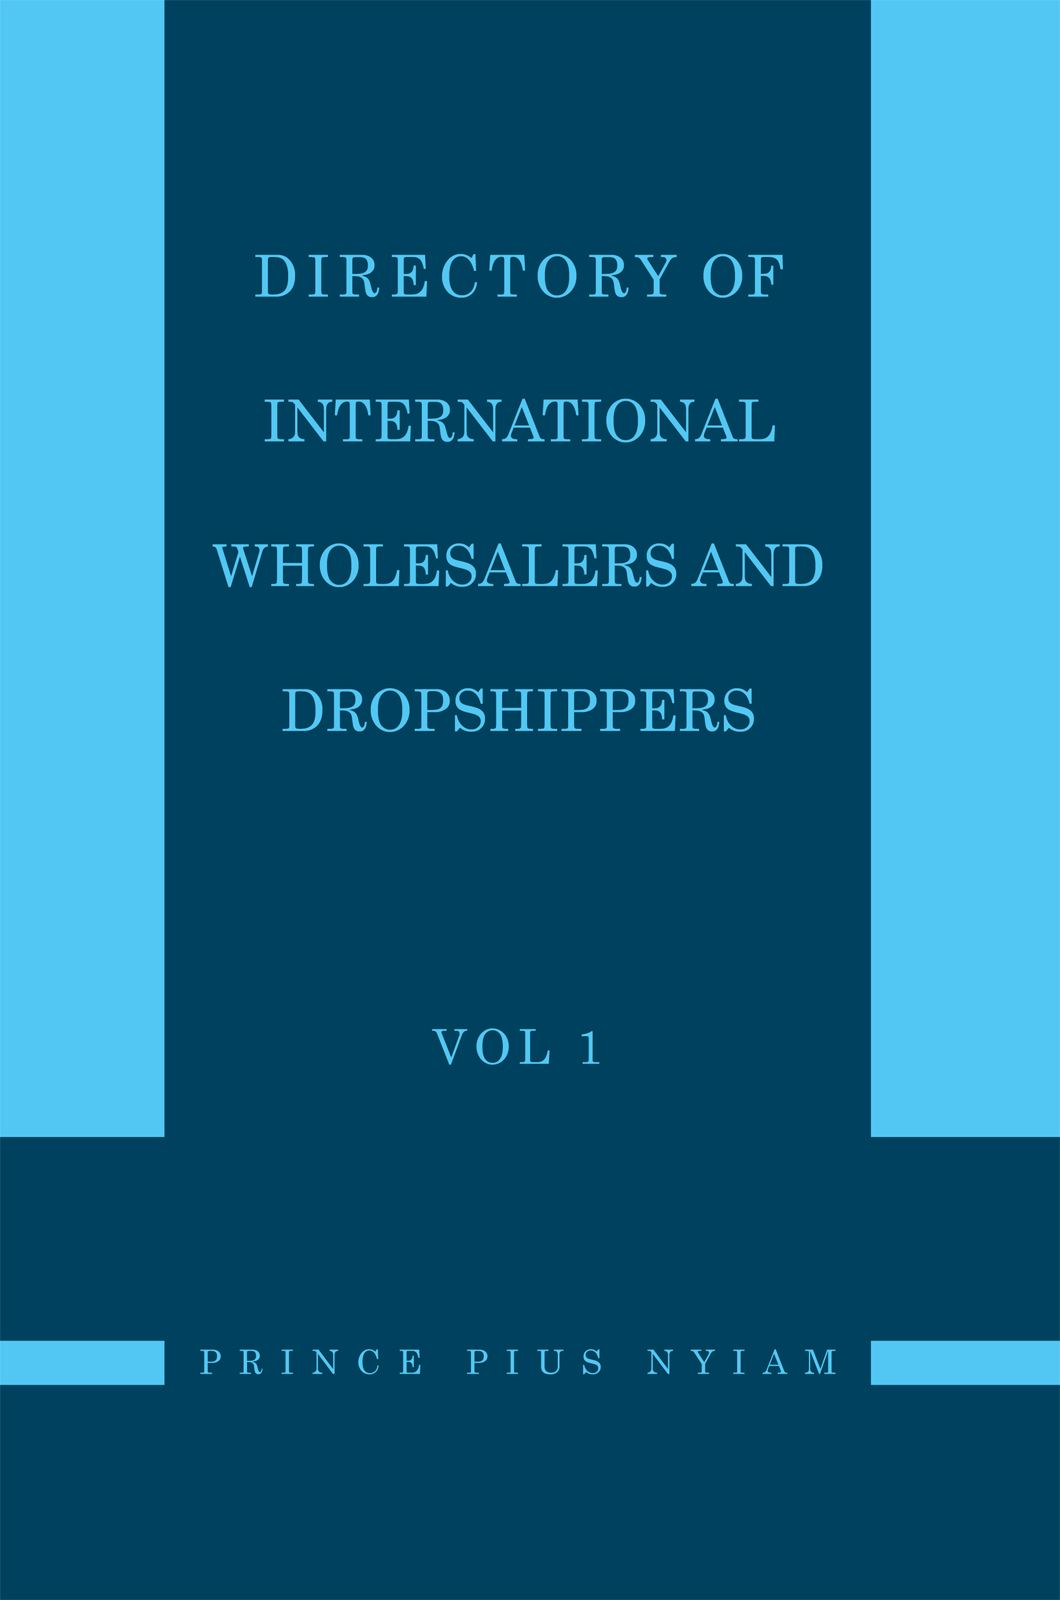 Directory of International Wholesalers and Dropshippers Vol 1